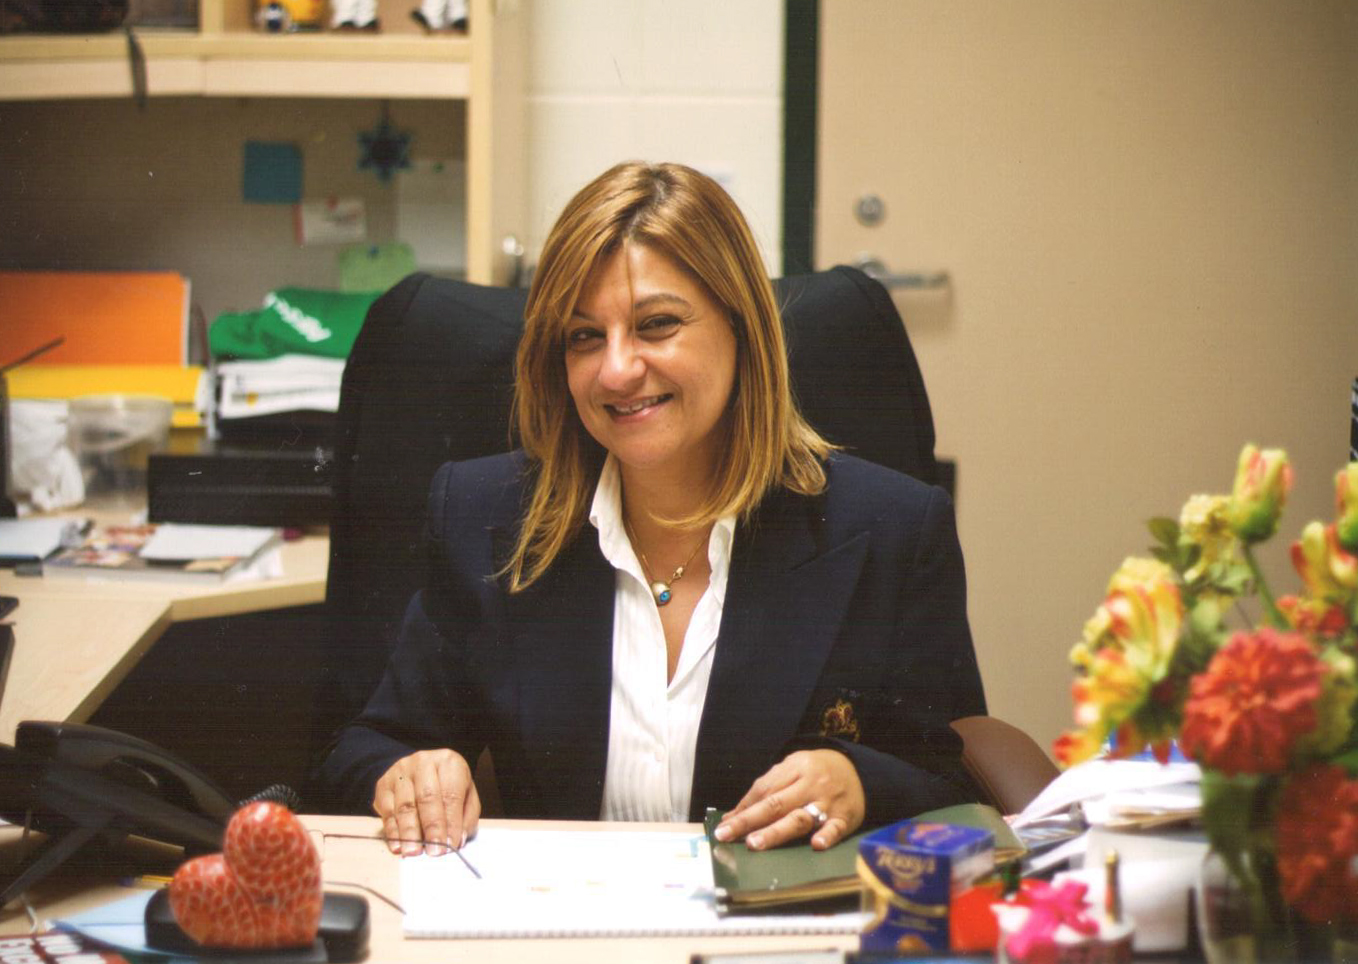 SEYLA COHEN- Preschool Director   Born in Izmir, Turkey, Seyla came to the USA in 1985. She began working as a teacher in the Temple Shalom Preschool in 1991, when her son was in the 2-year-old program, and became the Preschool Director in 2007.  Seyla has a degree in Business Administration. She also holds a Florida Child Care Professional Credential (FCCPC) and Advanced Director's Credential. She is passionate about Early Childhood Education and believes that self-confidence in children is the most important instrument to raise successful children.